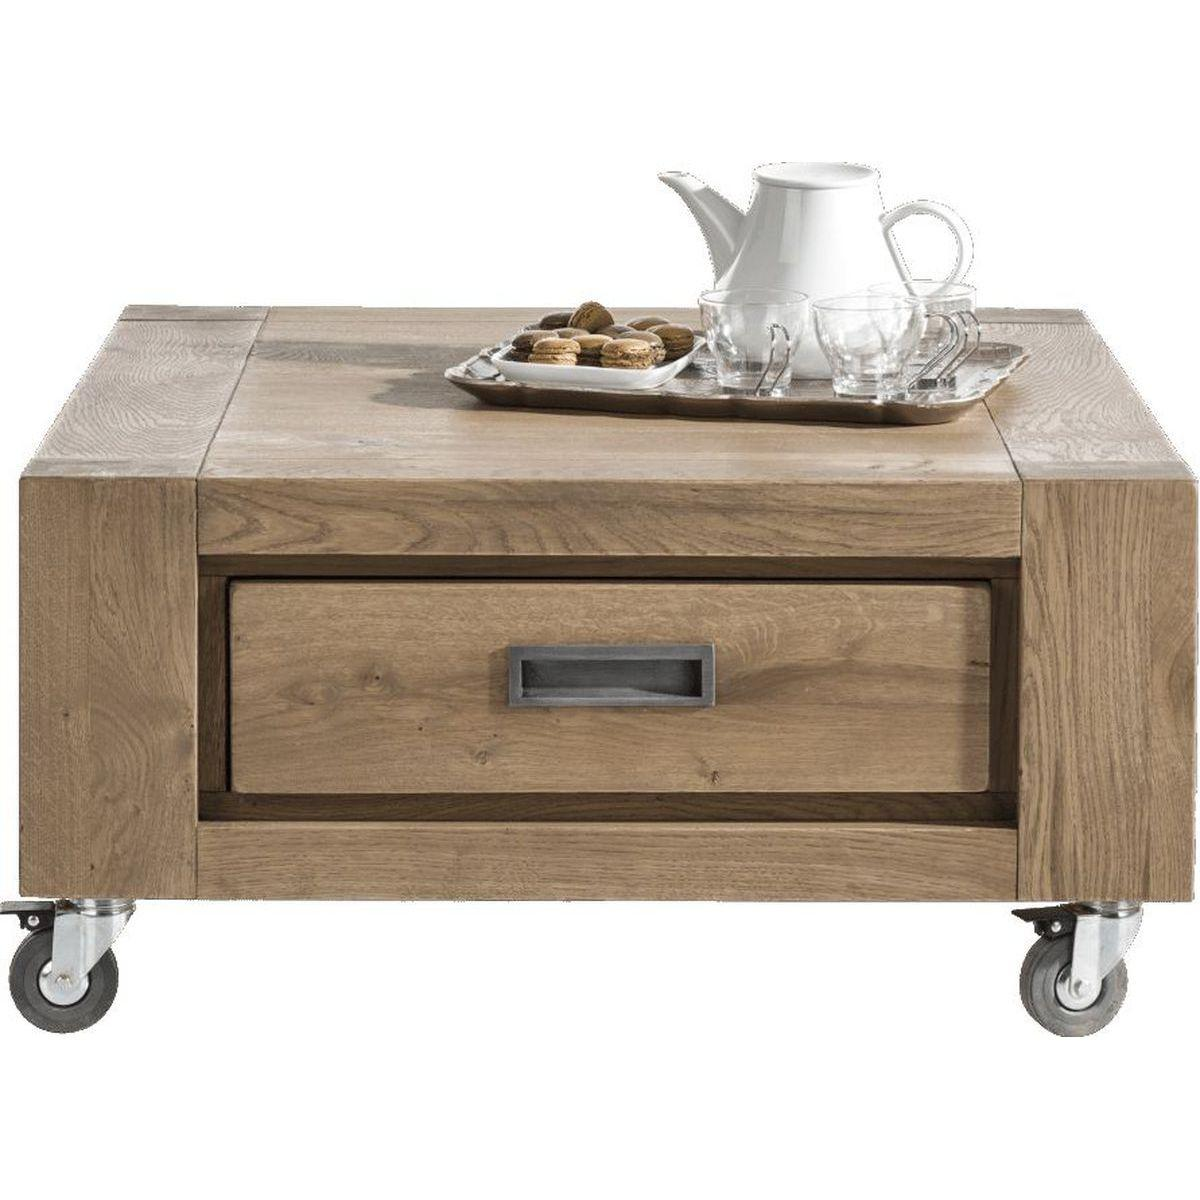 SANTORINI by H&H Table d'appoint